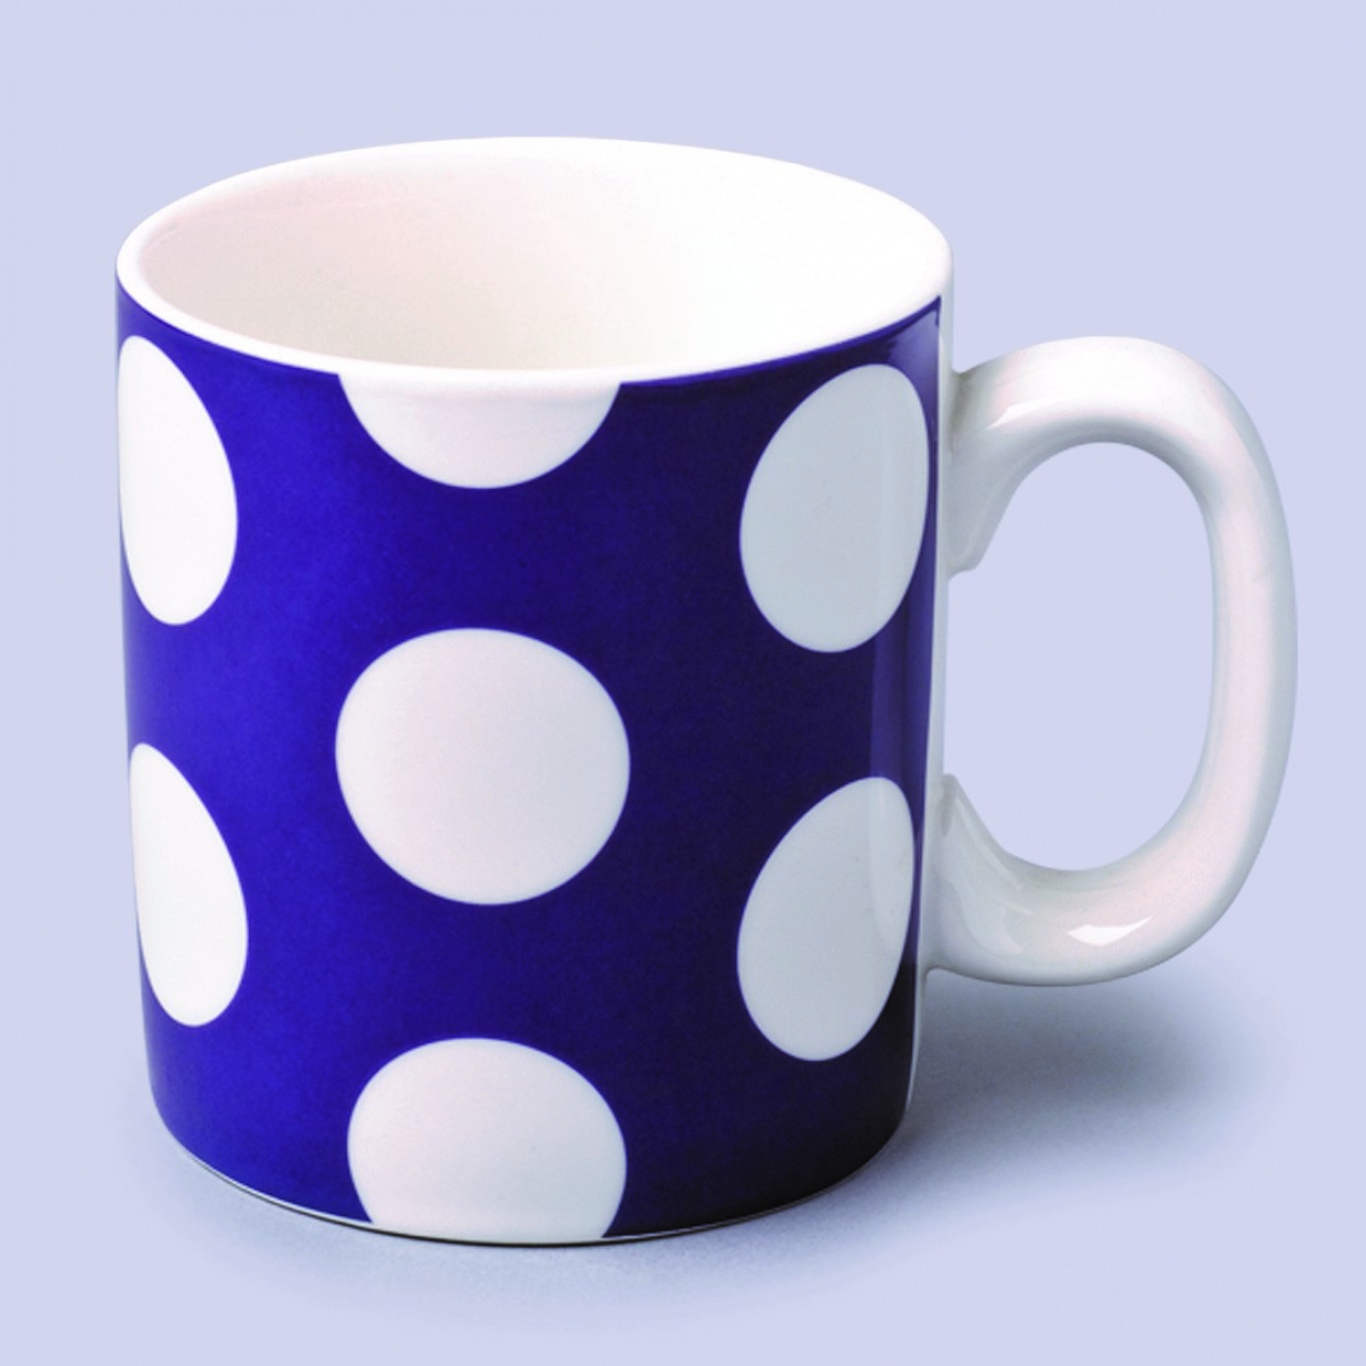 Image of Large Mug Purple Spot 0.7 pint